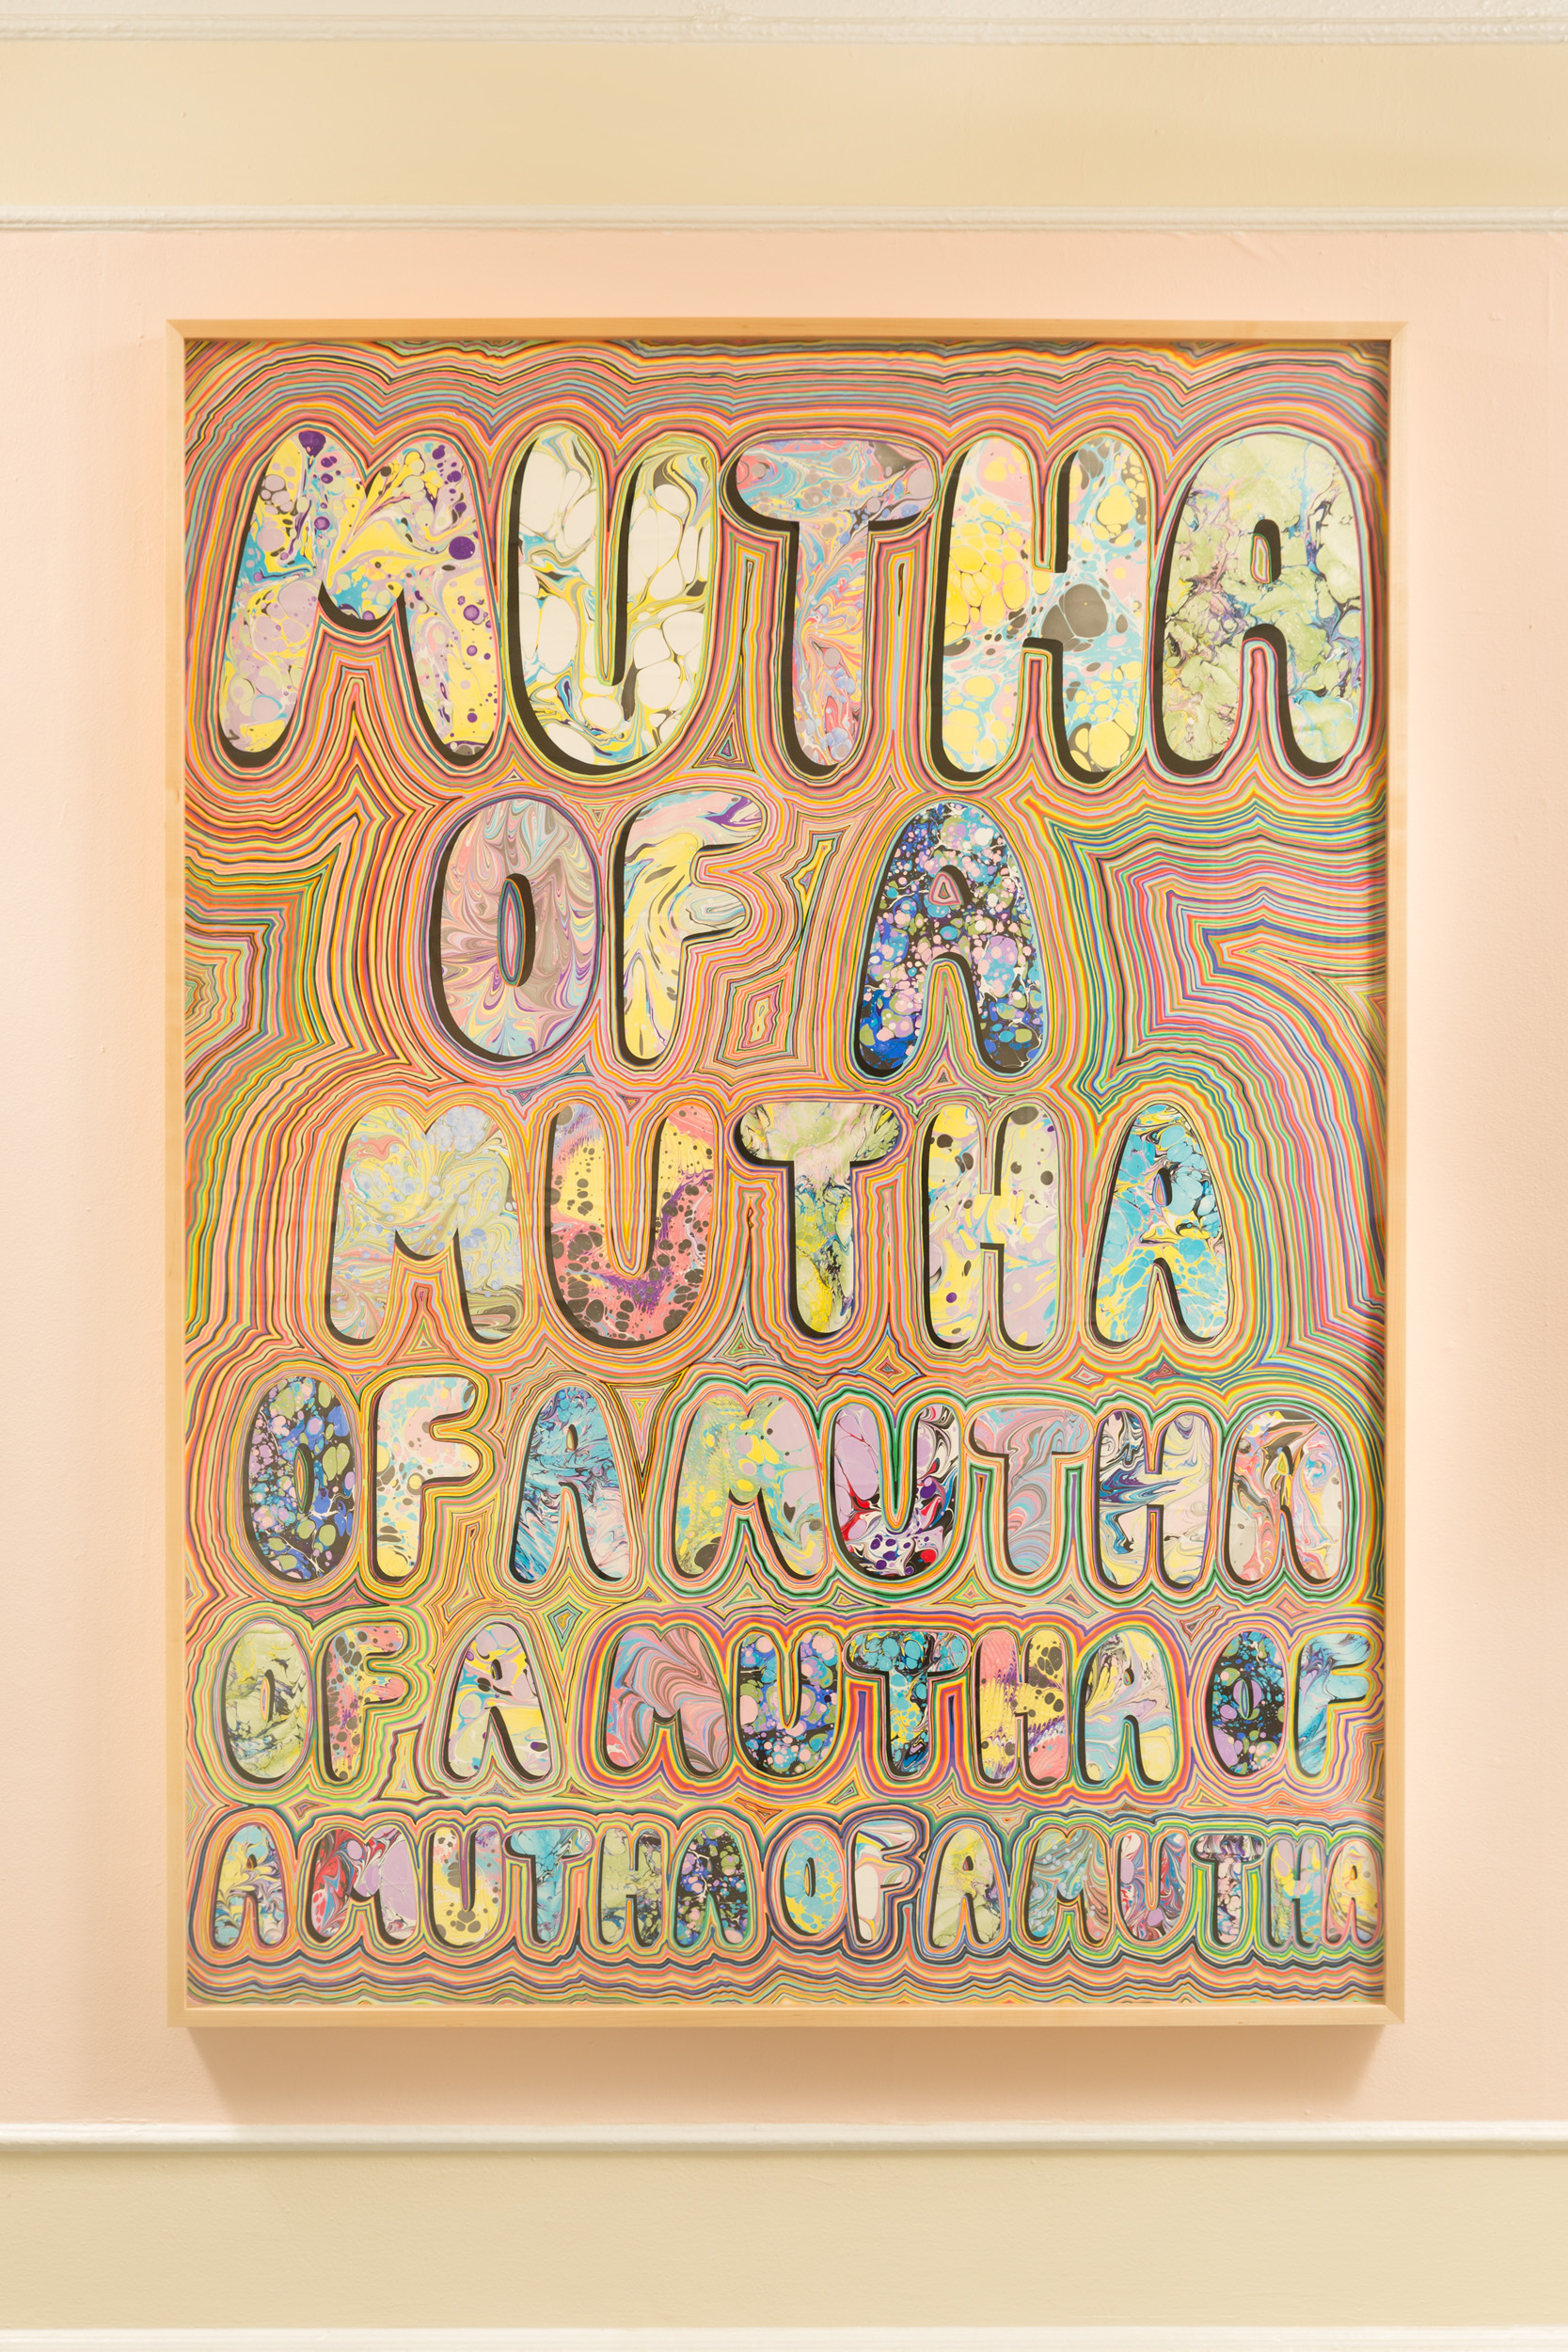 Mutha of a mutha of a mutha of a mutha…. (2017) marbled paper and acrylic on paper, 5 feet 4 inches x 3 feet 4 inches